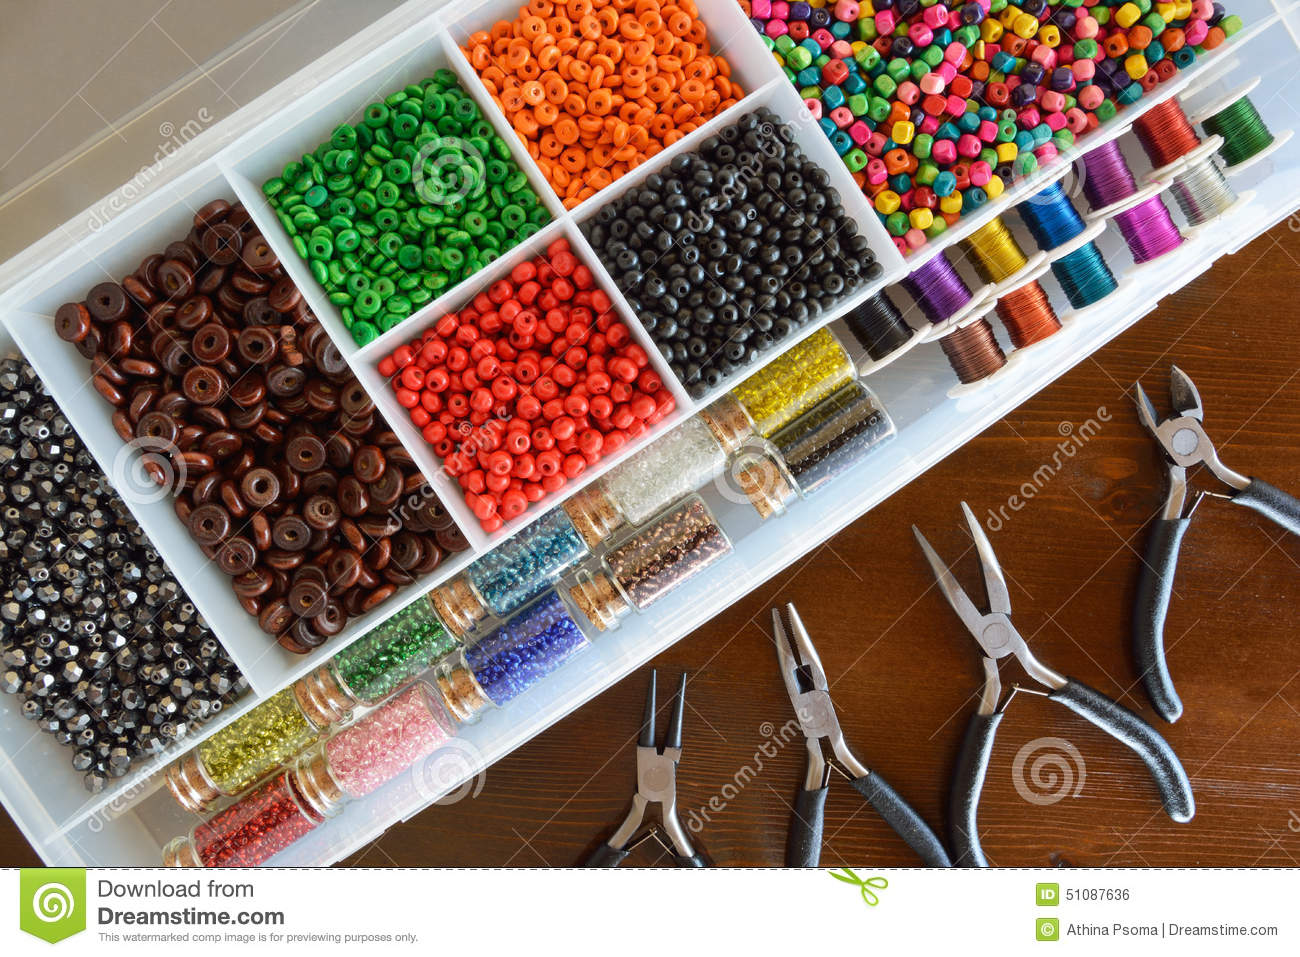 Beads and wire crafts stock photo. Image of container - 51087636